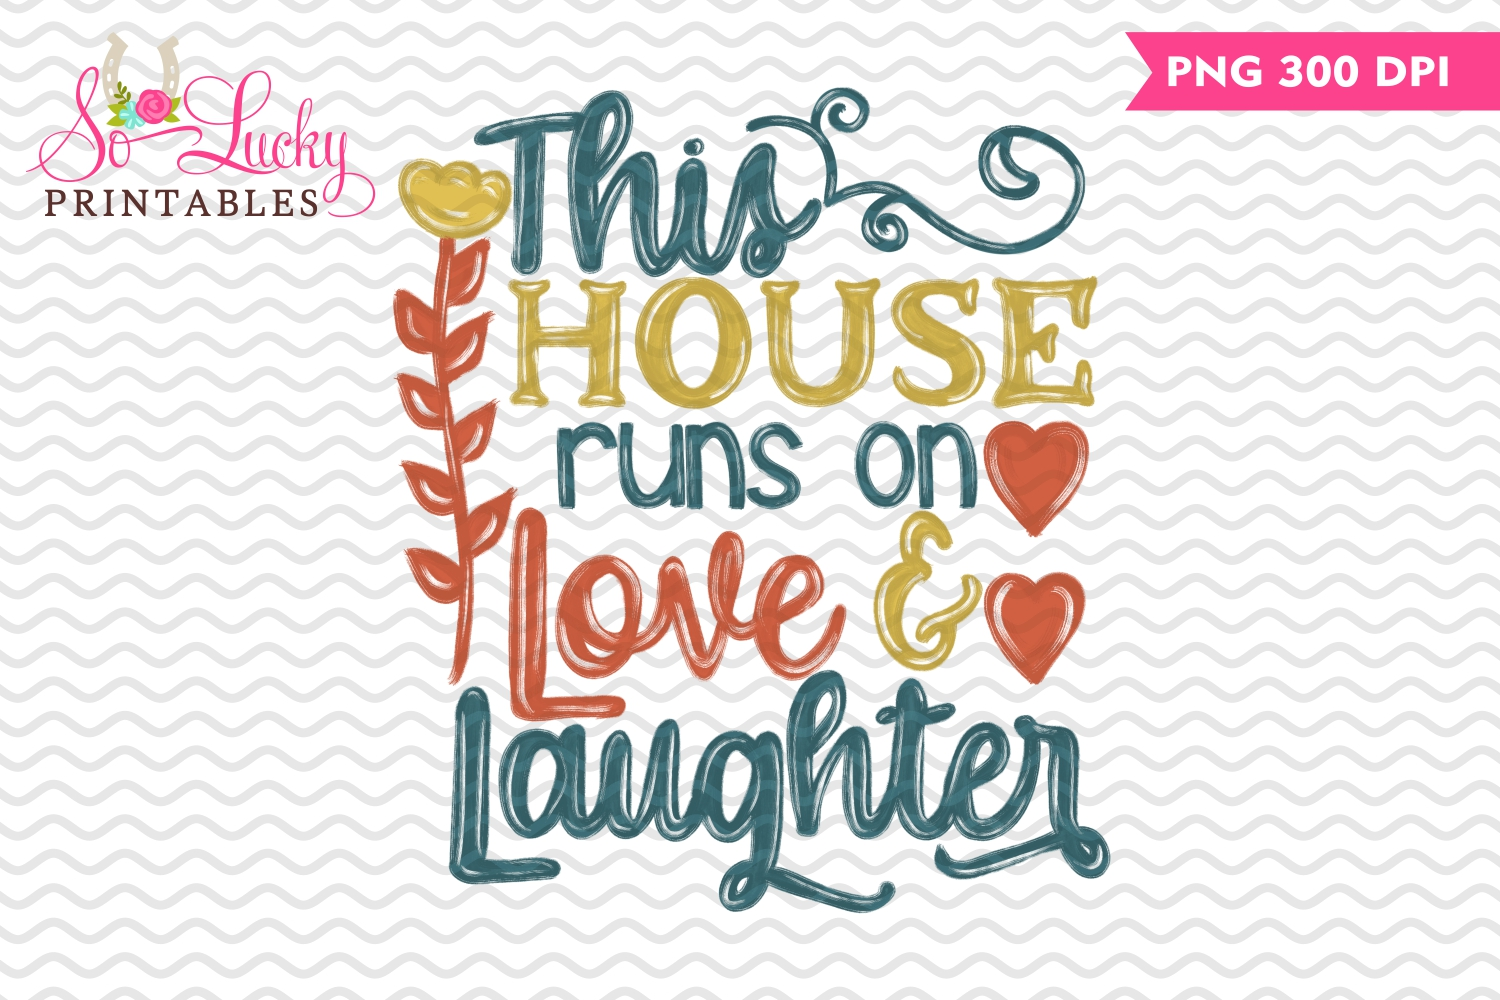 This house runs on love and laughter sublimation design example image 1